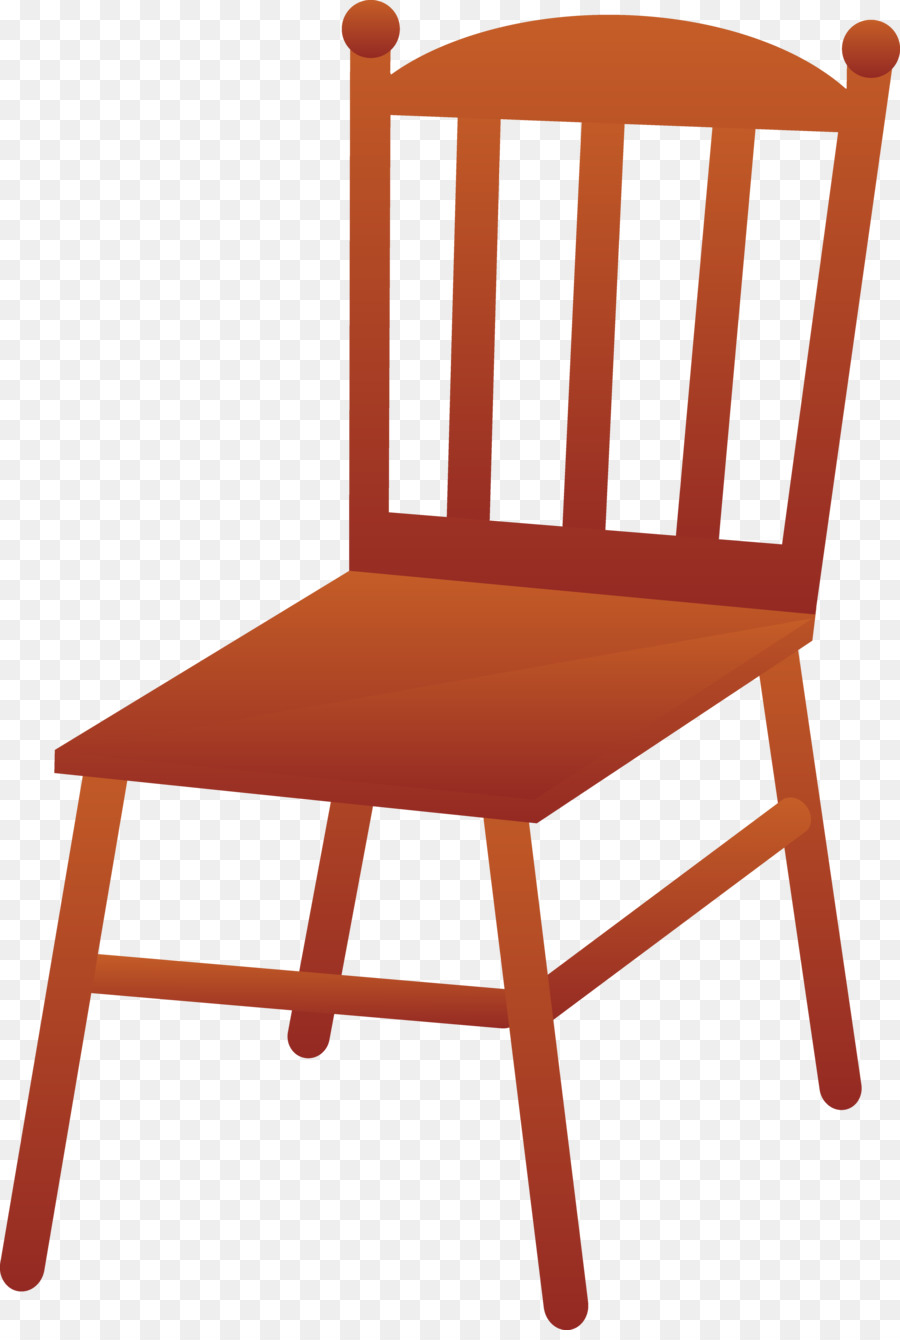 900x1340 Table Rocking Chairs Clip Art